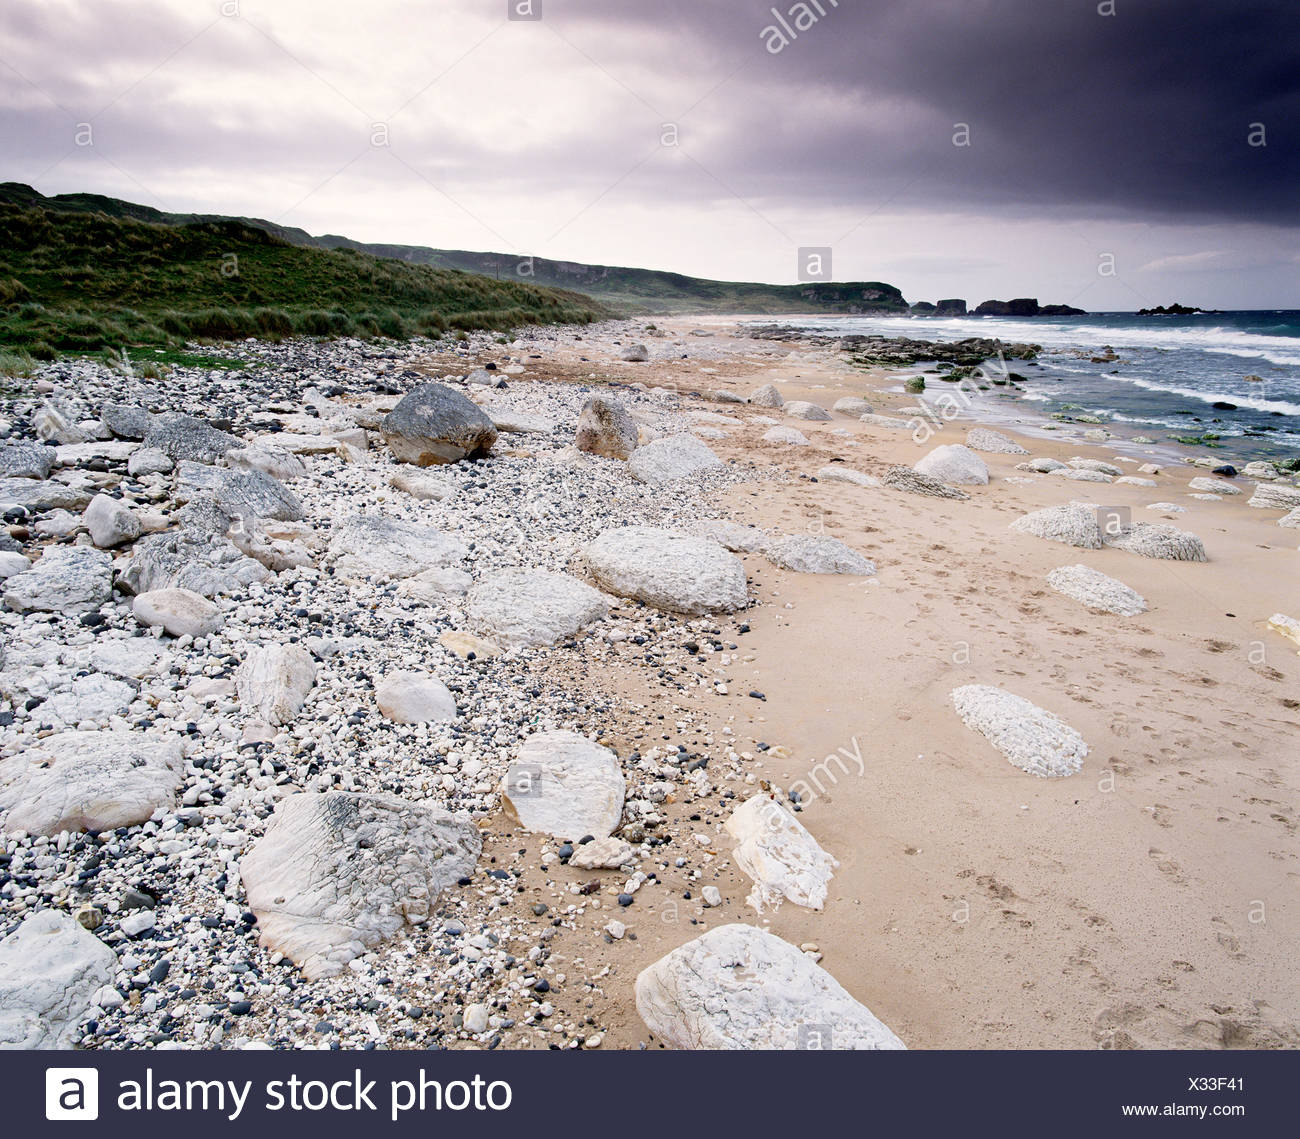 A moody sky overlooks the rocky beach of White Park Bay, N.Ireland - Stock Image